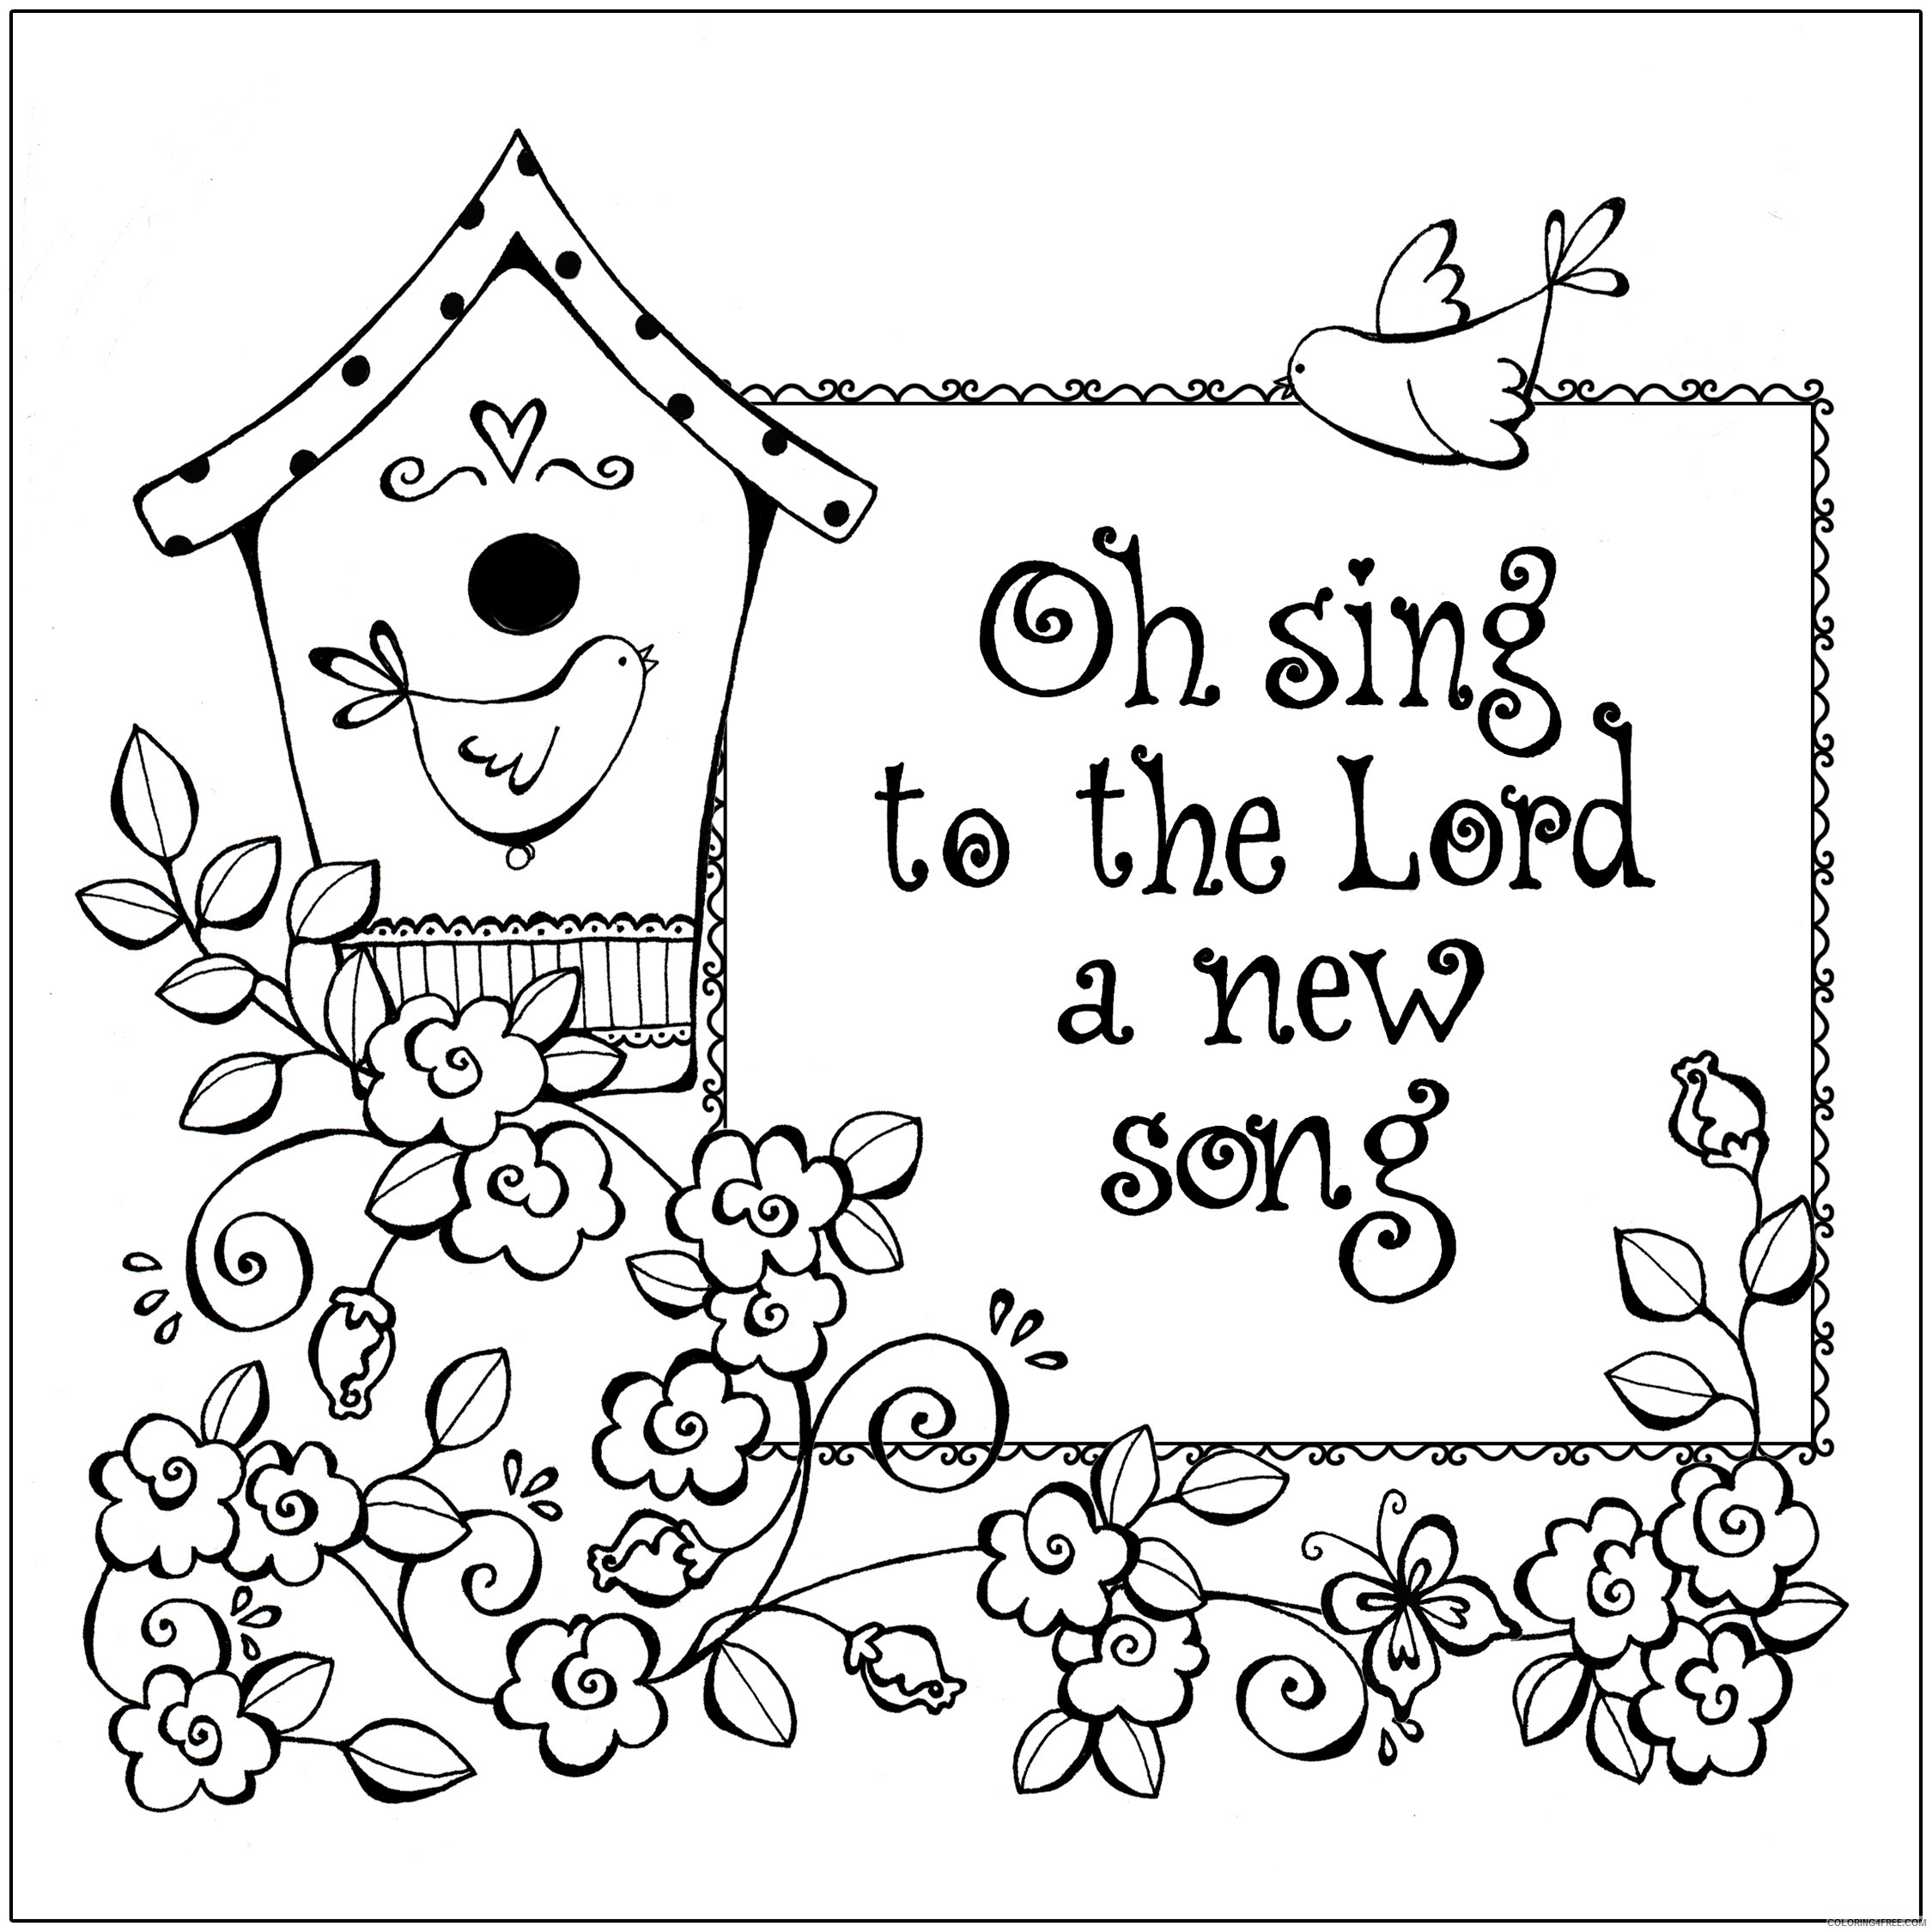 christian coloring pages bible verses Coloring4free